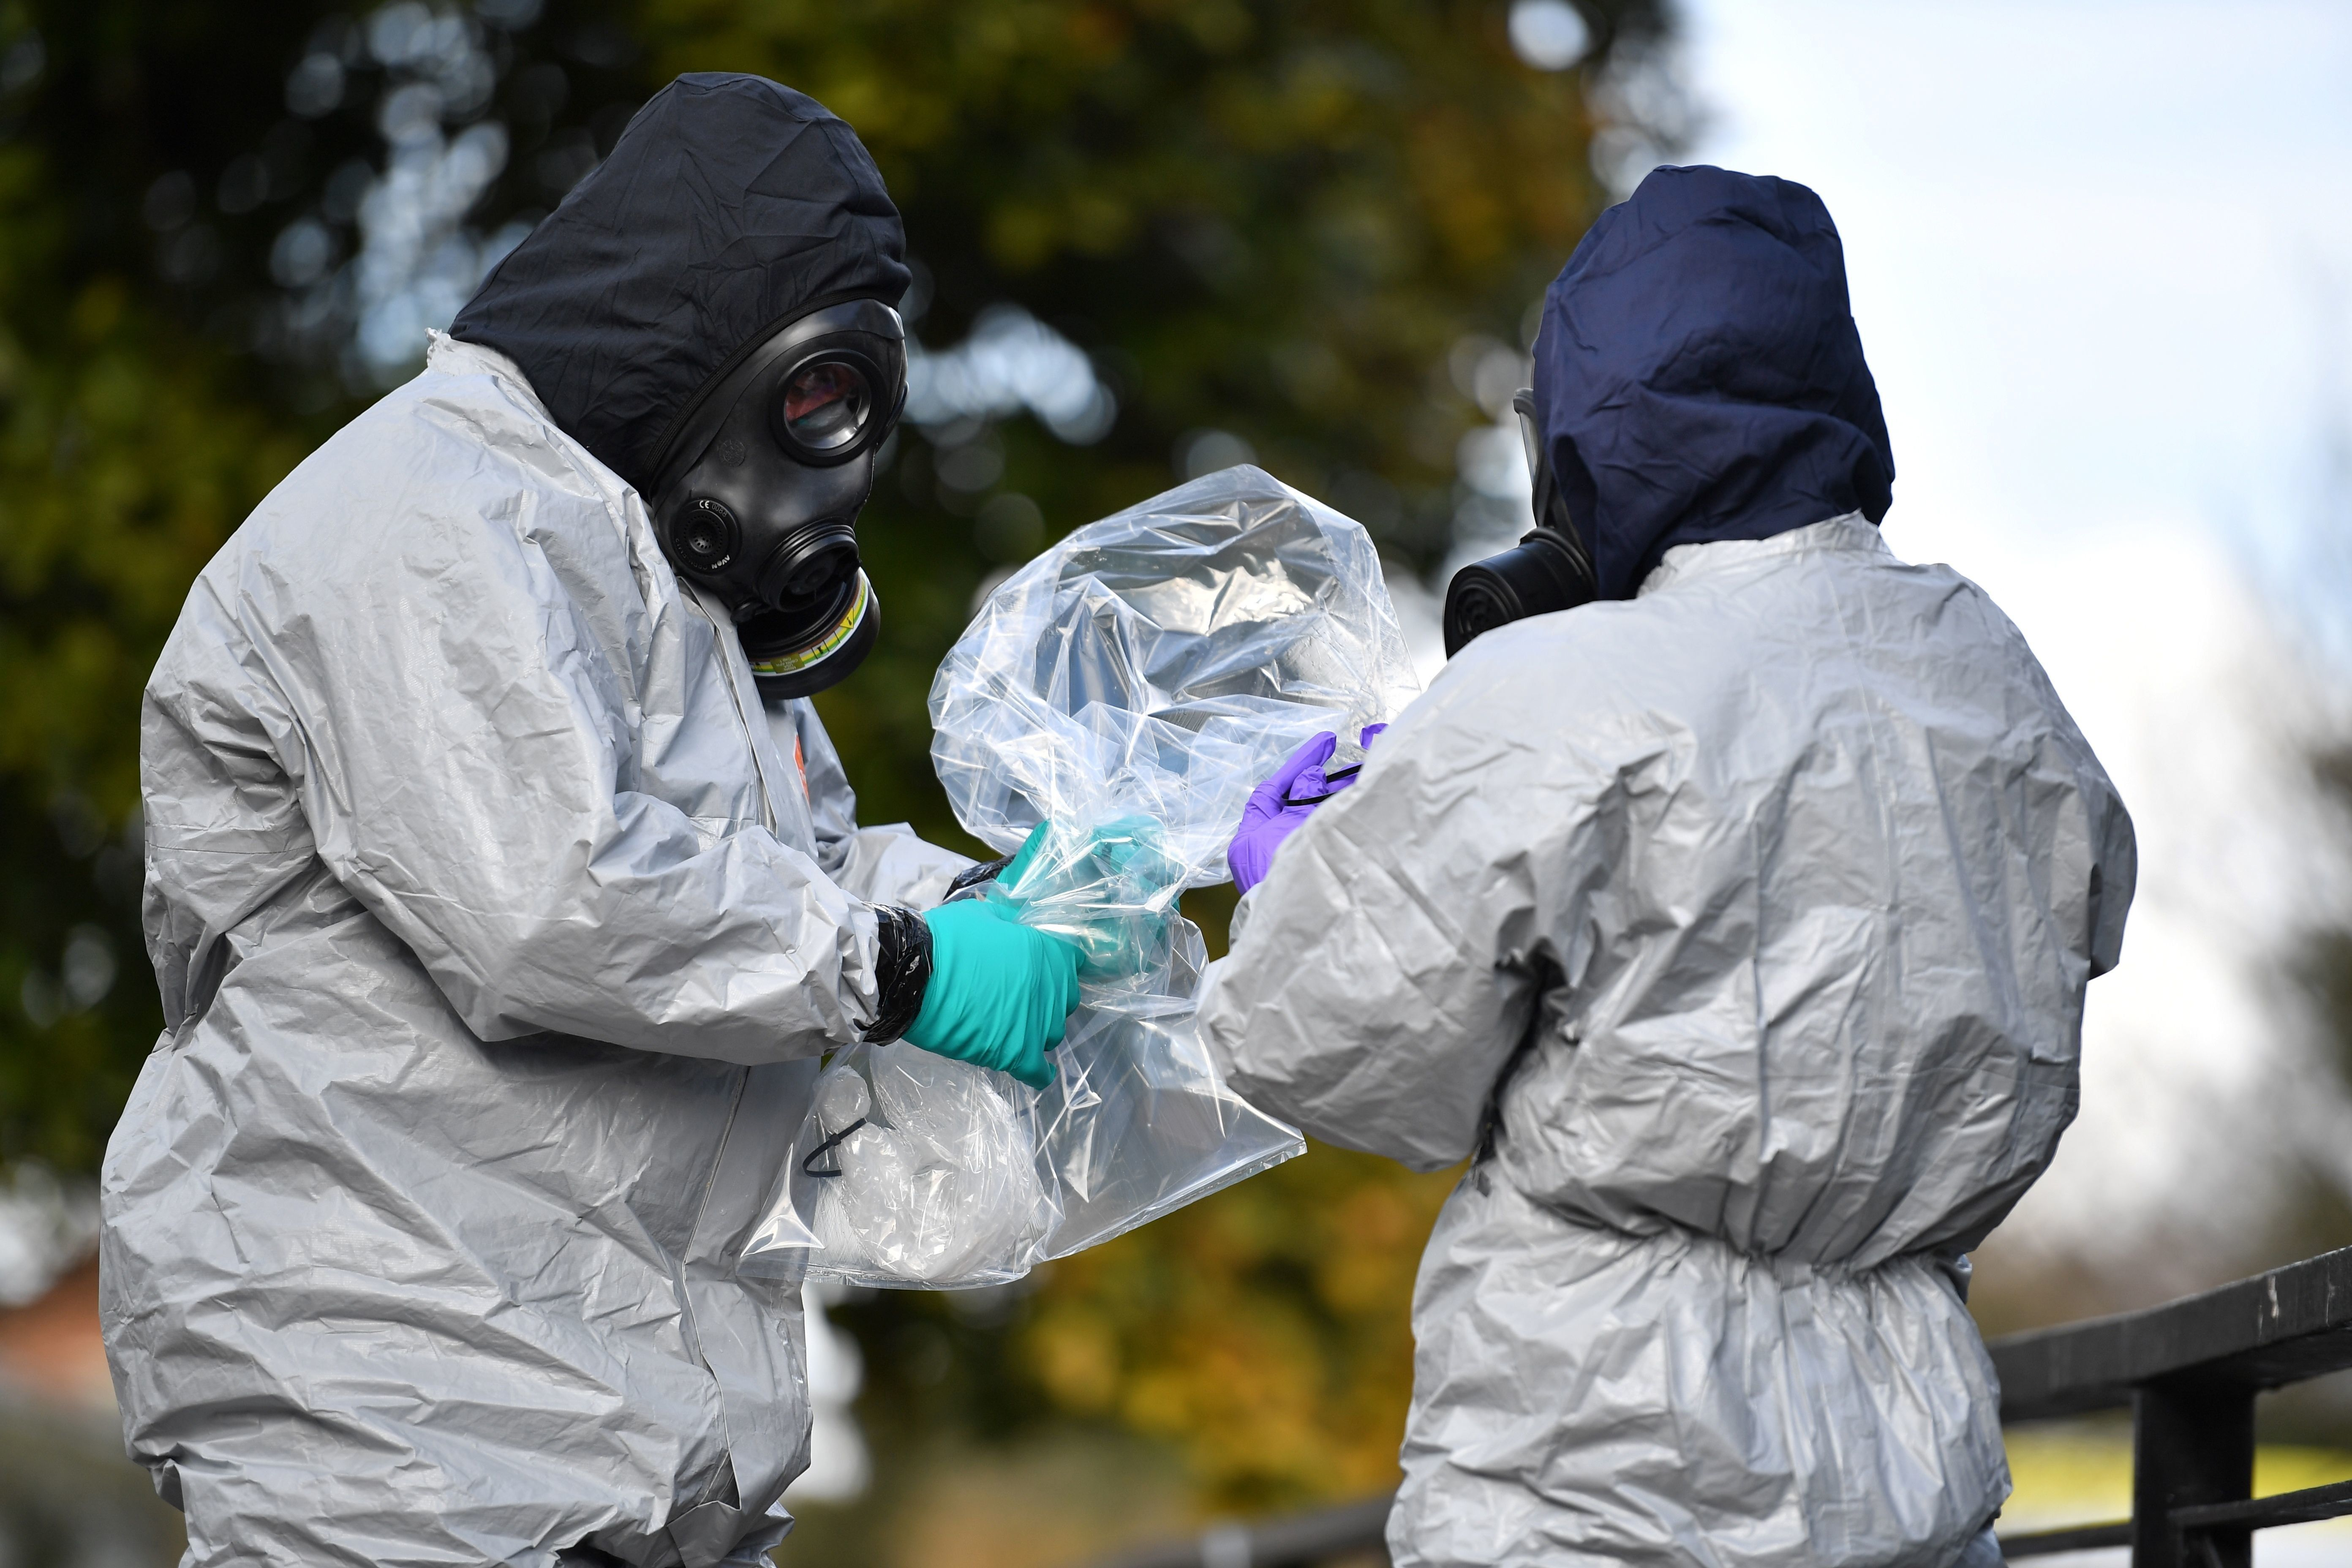 Salisbury Nerve Agent Could Still Be At 'Toxic' Levels In Places, Residents